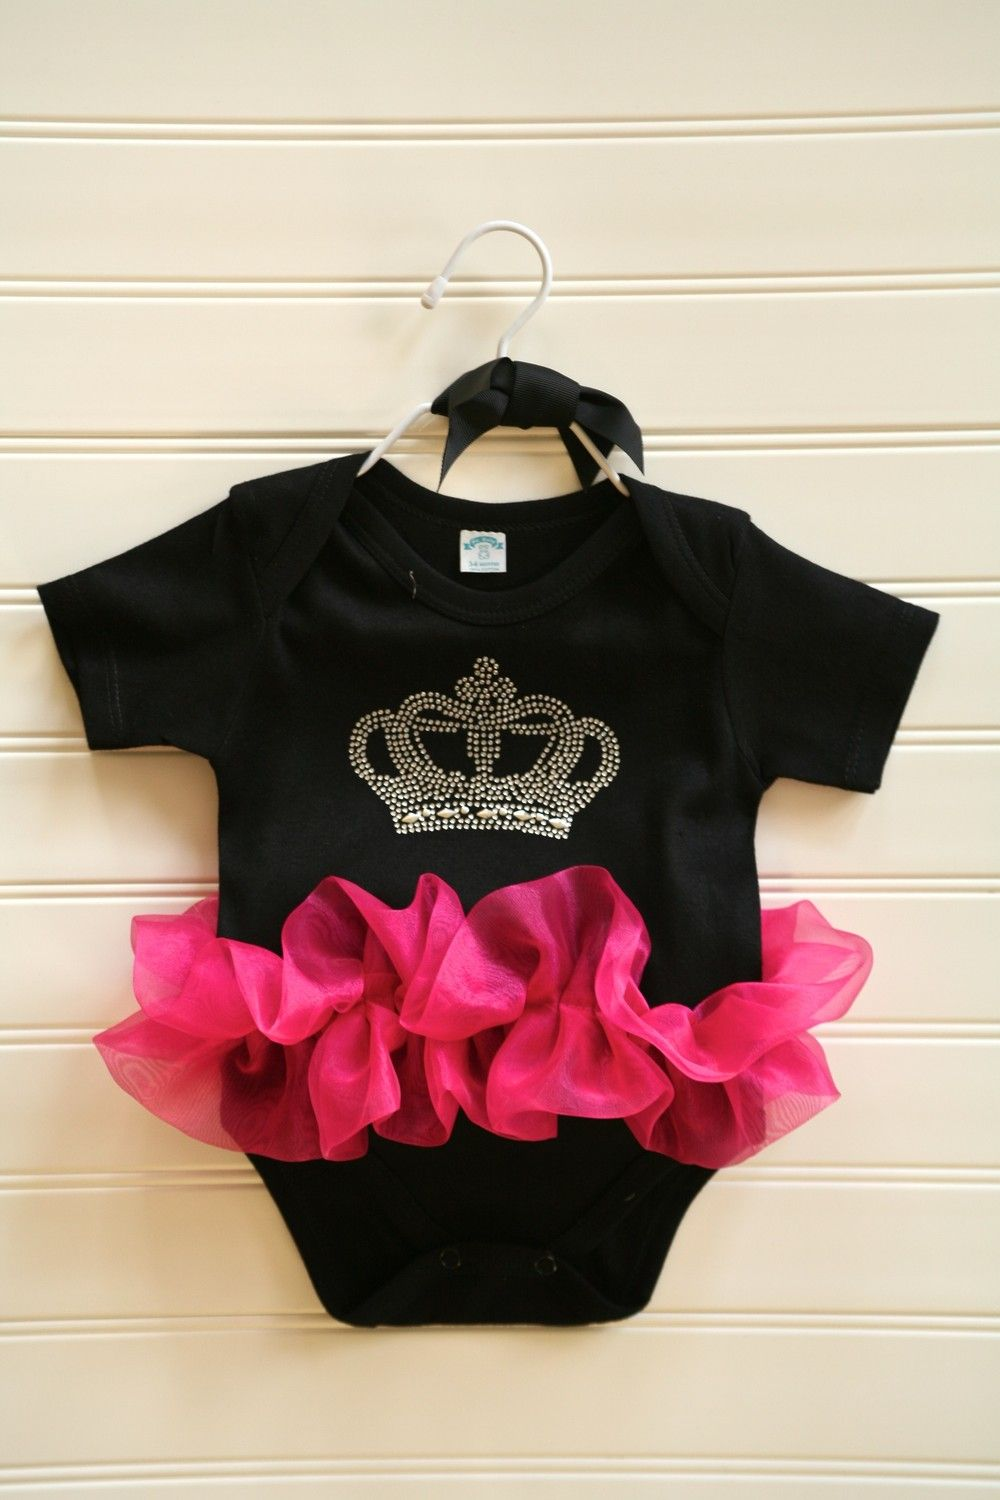 dcf2205d3b35ee Princess Crown Onesie.  23.00